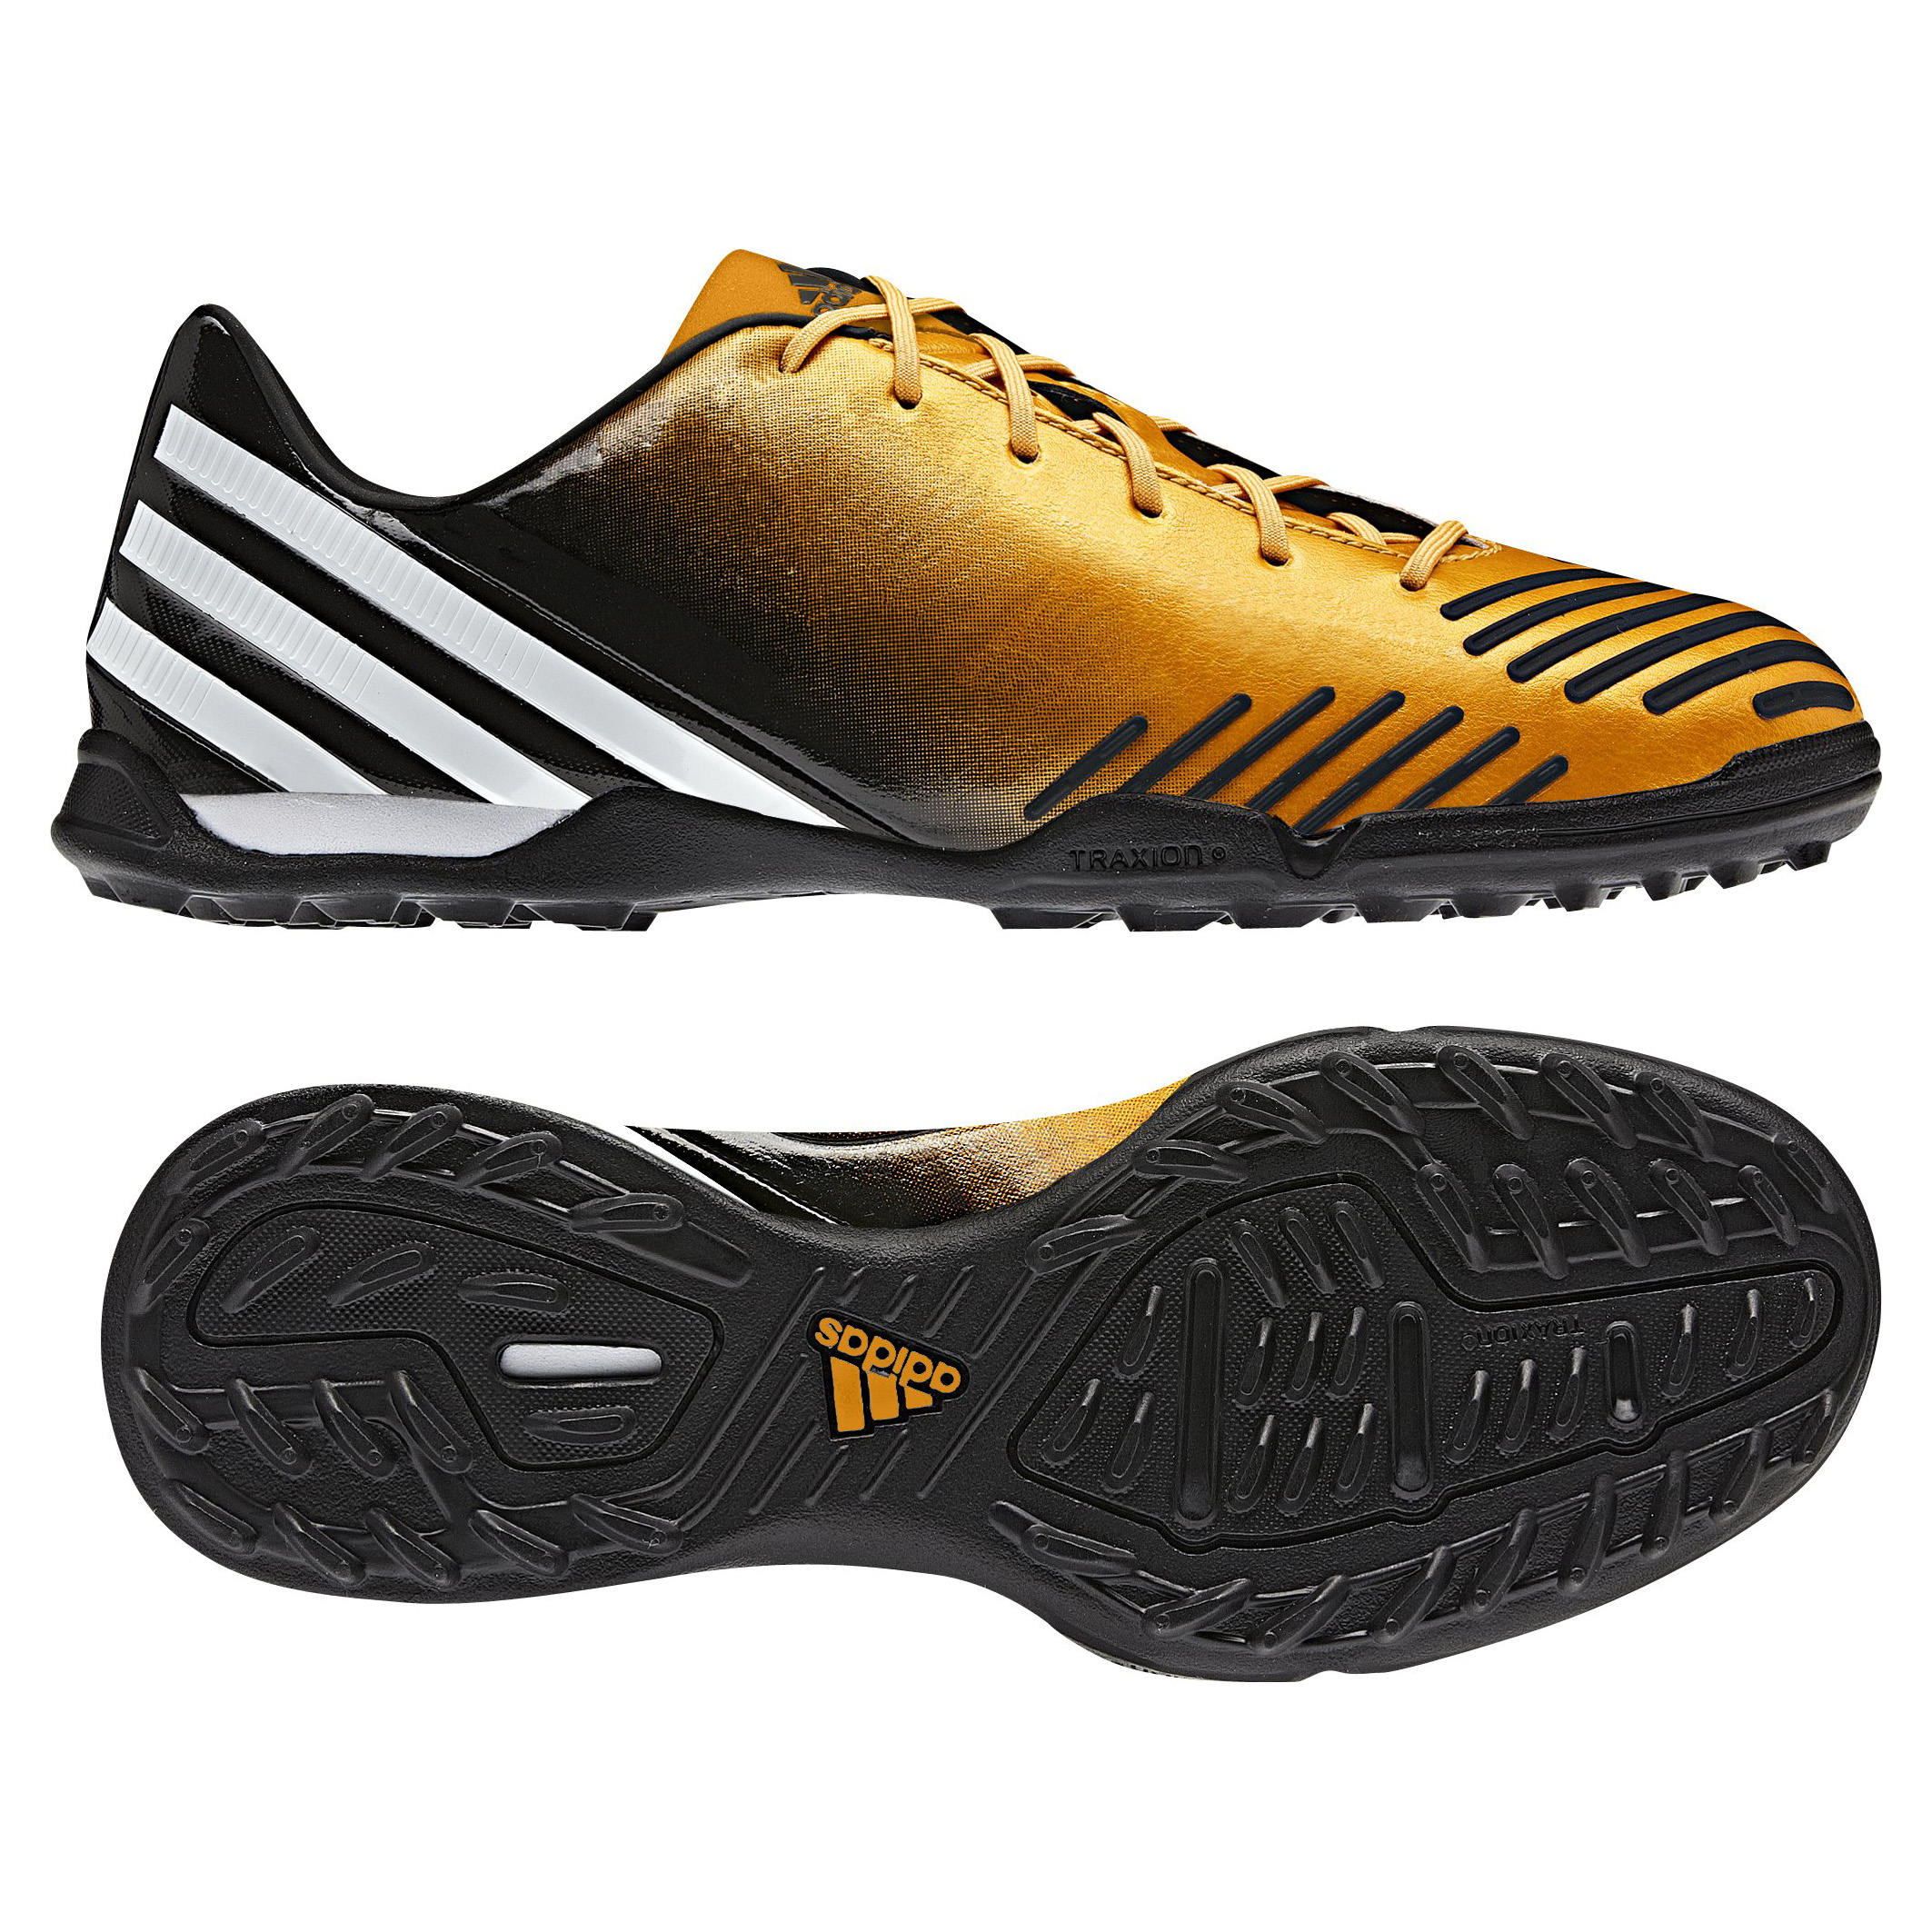 Adidas Predator Absolado LZ TRX Astro Turf Trainers - Bright Gold/Running White/Black-Kids